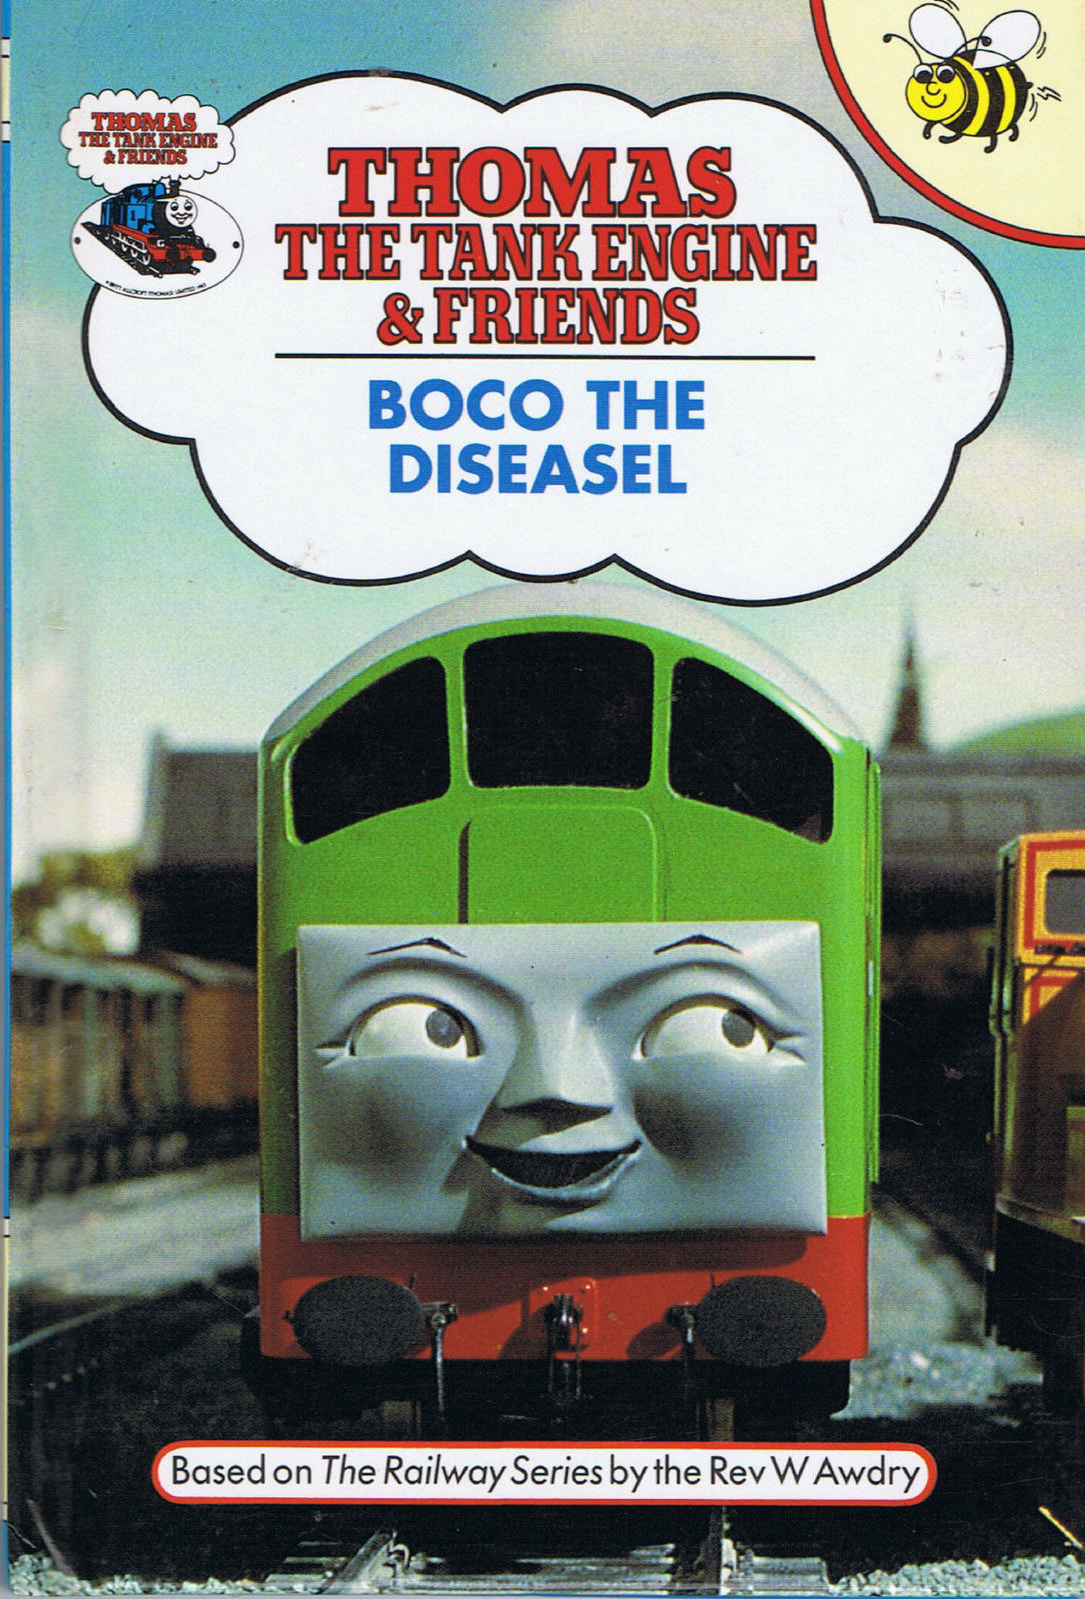 Image boco in trainz thomas and friends png scratchpad fandom - Boco The Diseasel Buzz Book Thomas The Tank Engine